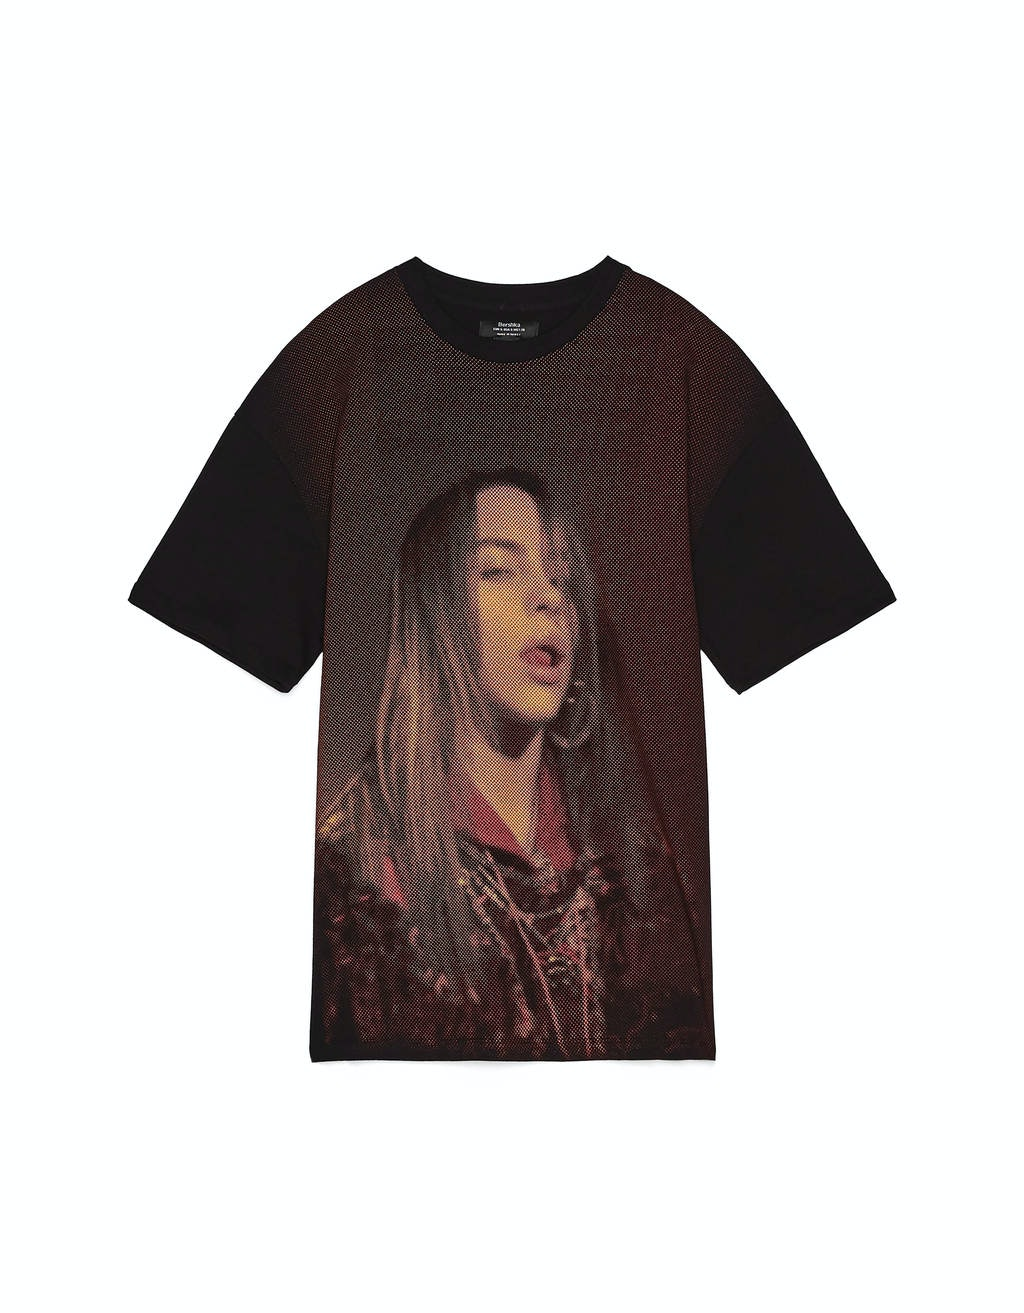 Billie Eilish S Bershka Collection Is Full Of Bold Baggy Pieces Because Comfort Is This Star S Speciality